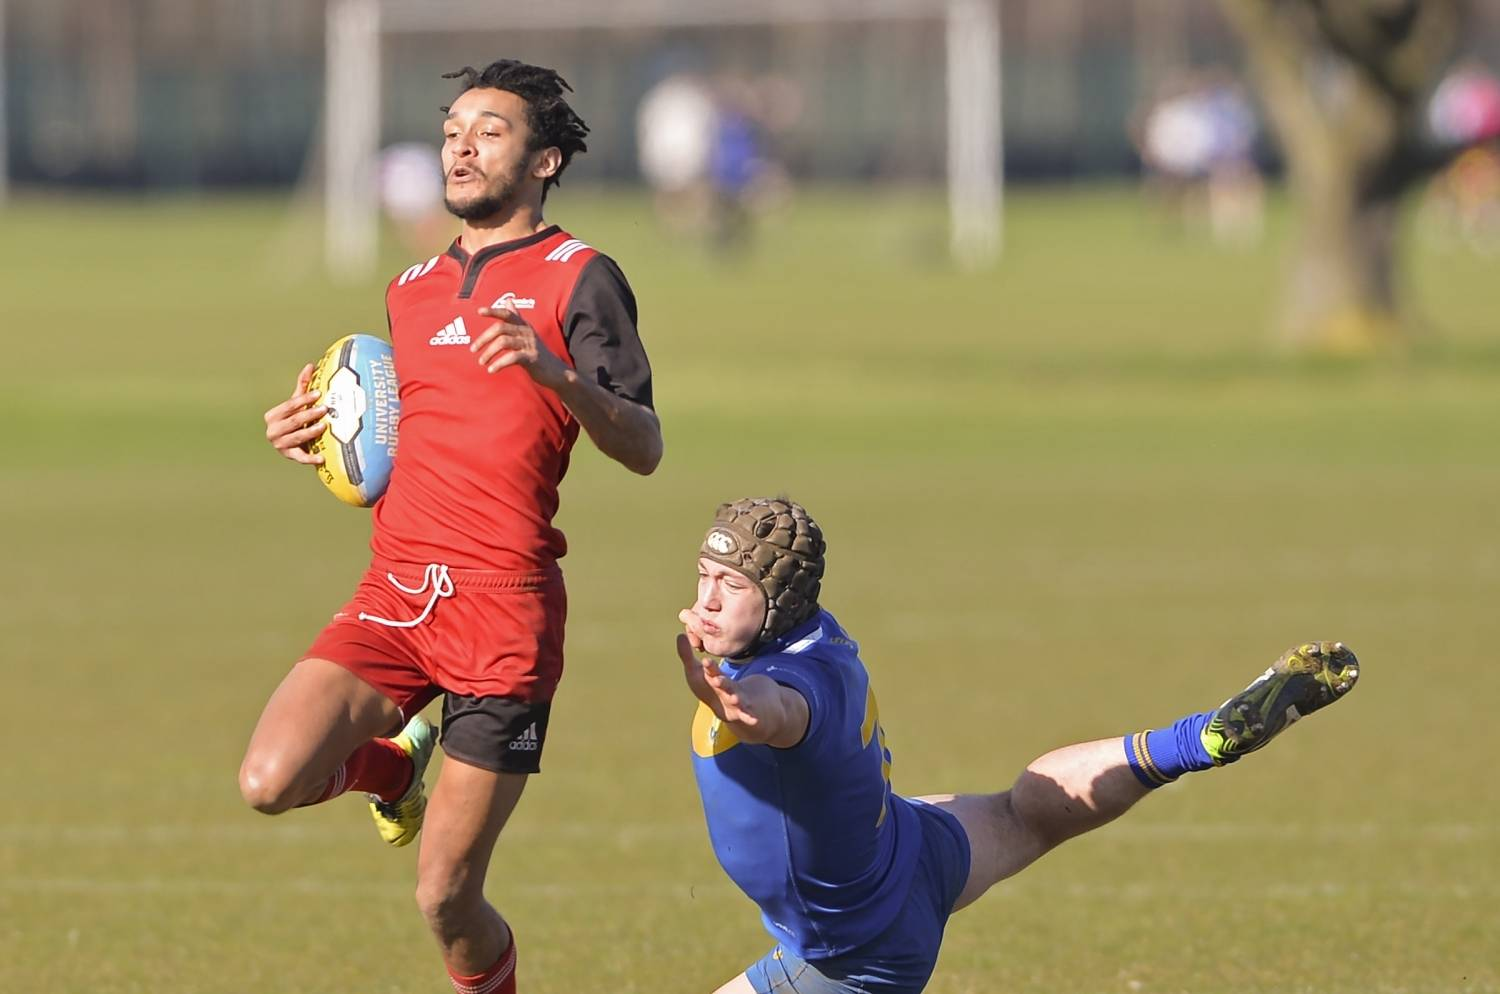 Northumbria continue their strong start